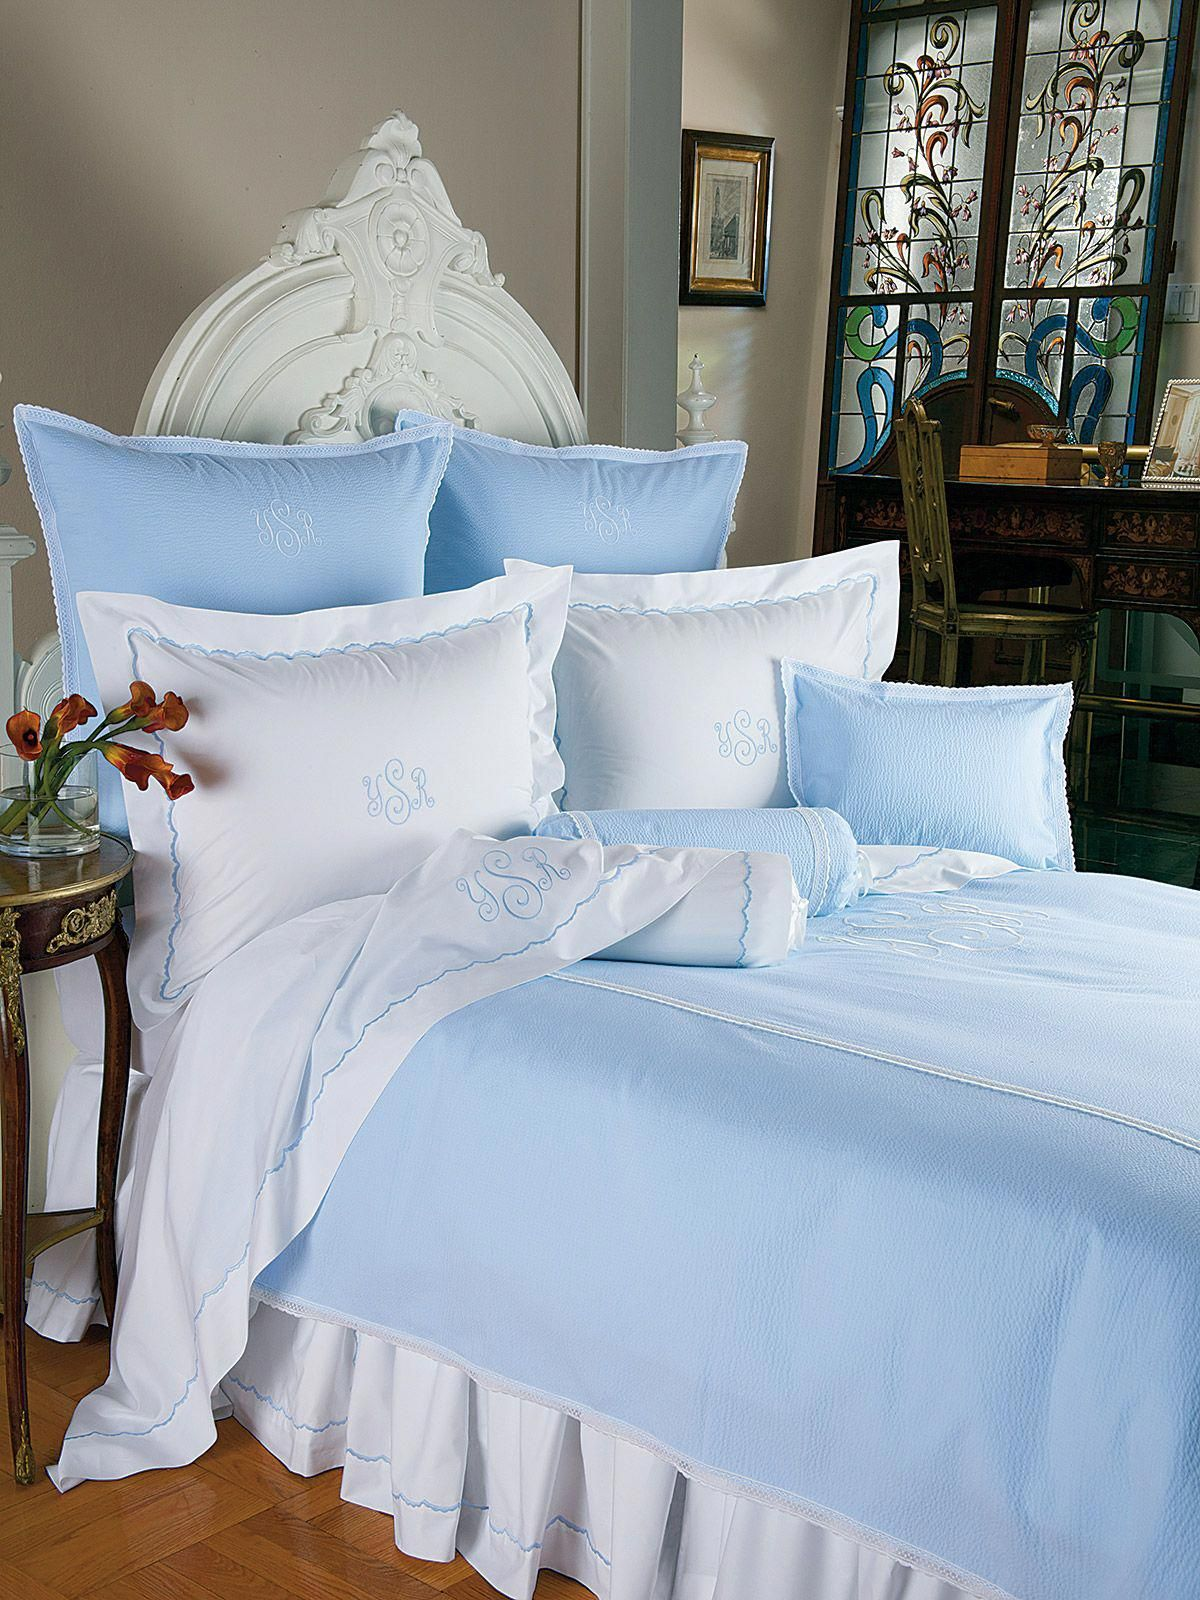 Old Fashioned Sheets Pillowcases Shams And Duvet Covers Are Traditionally Scalloped In White